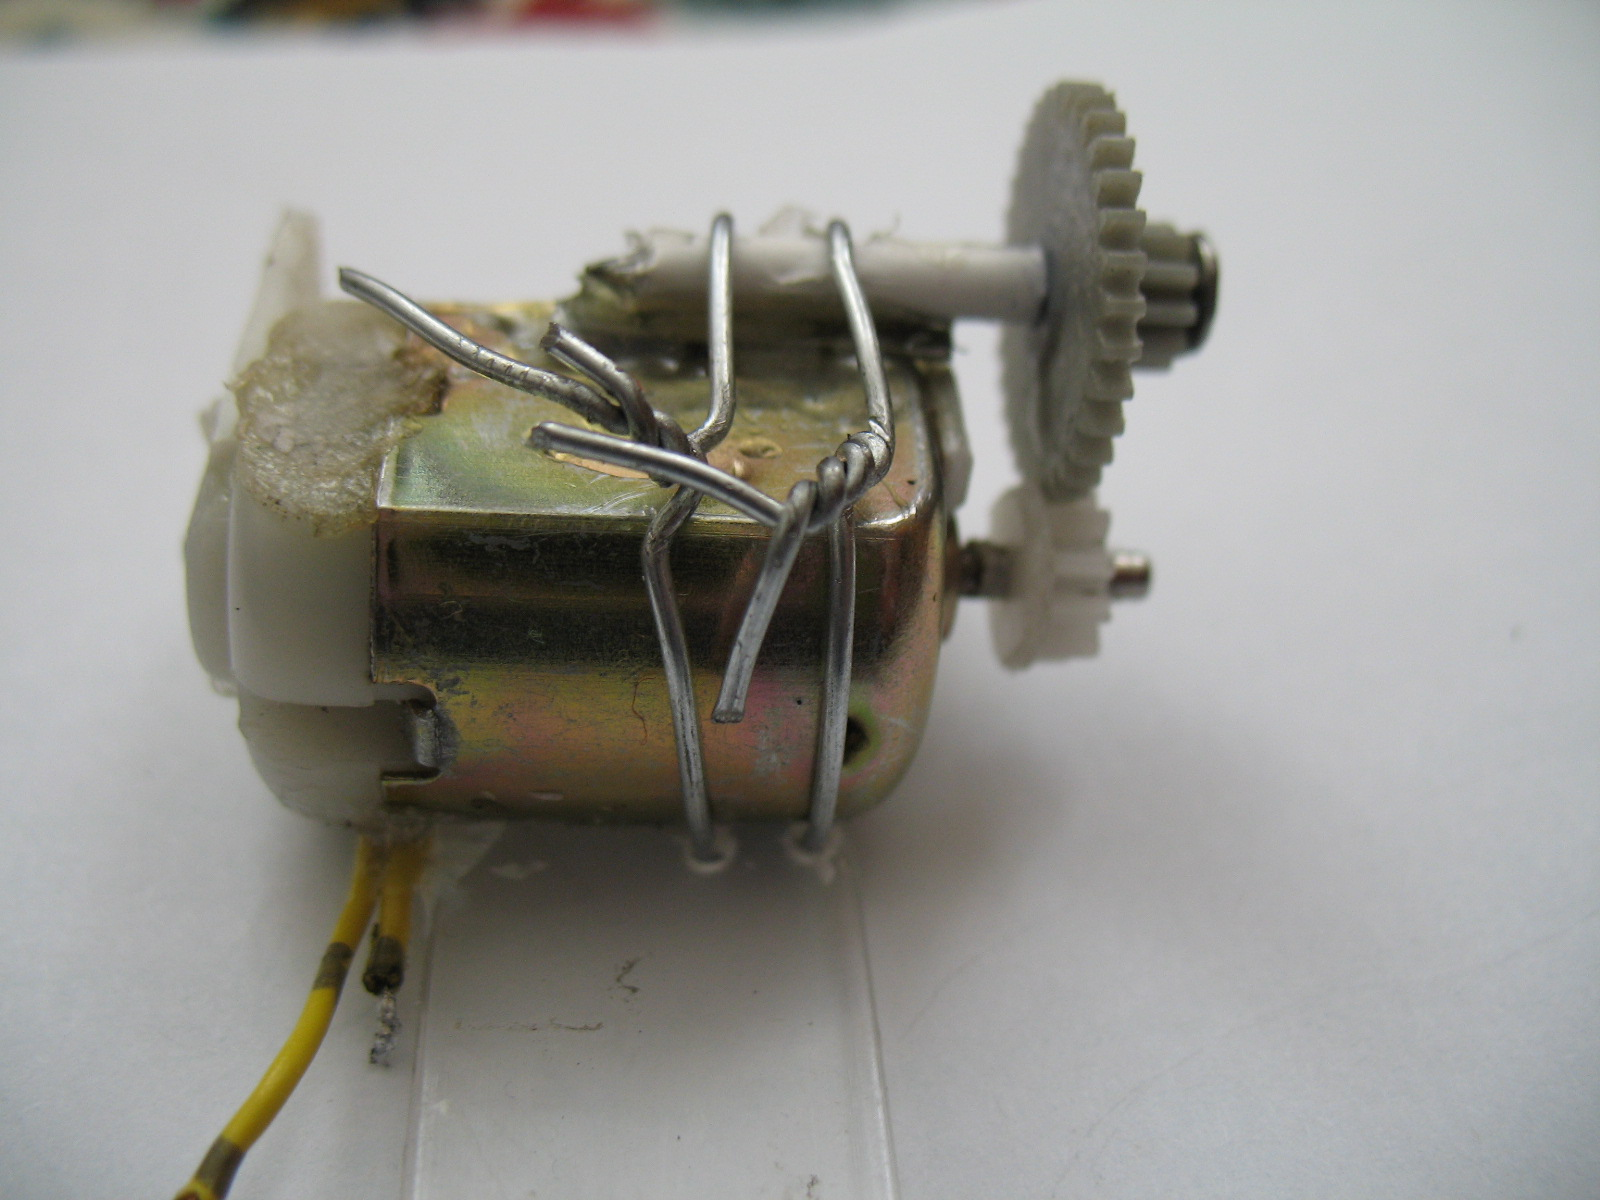 Picture of Motor, Grears, Shaft, and Wheels